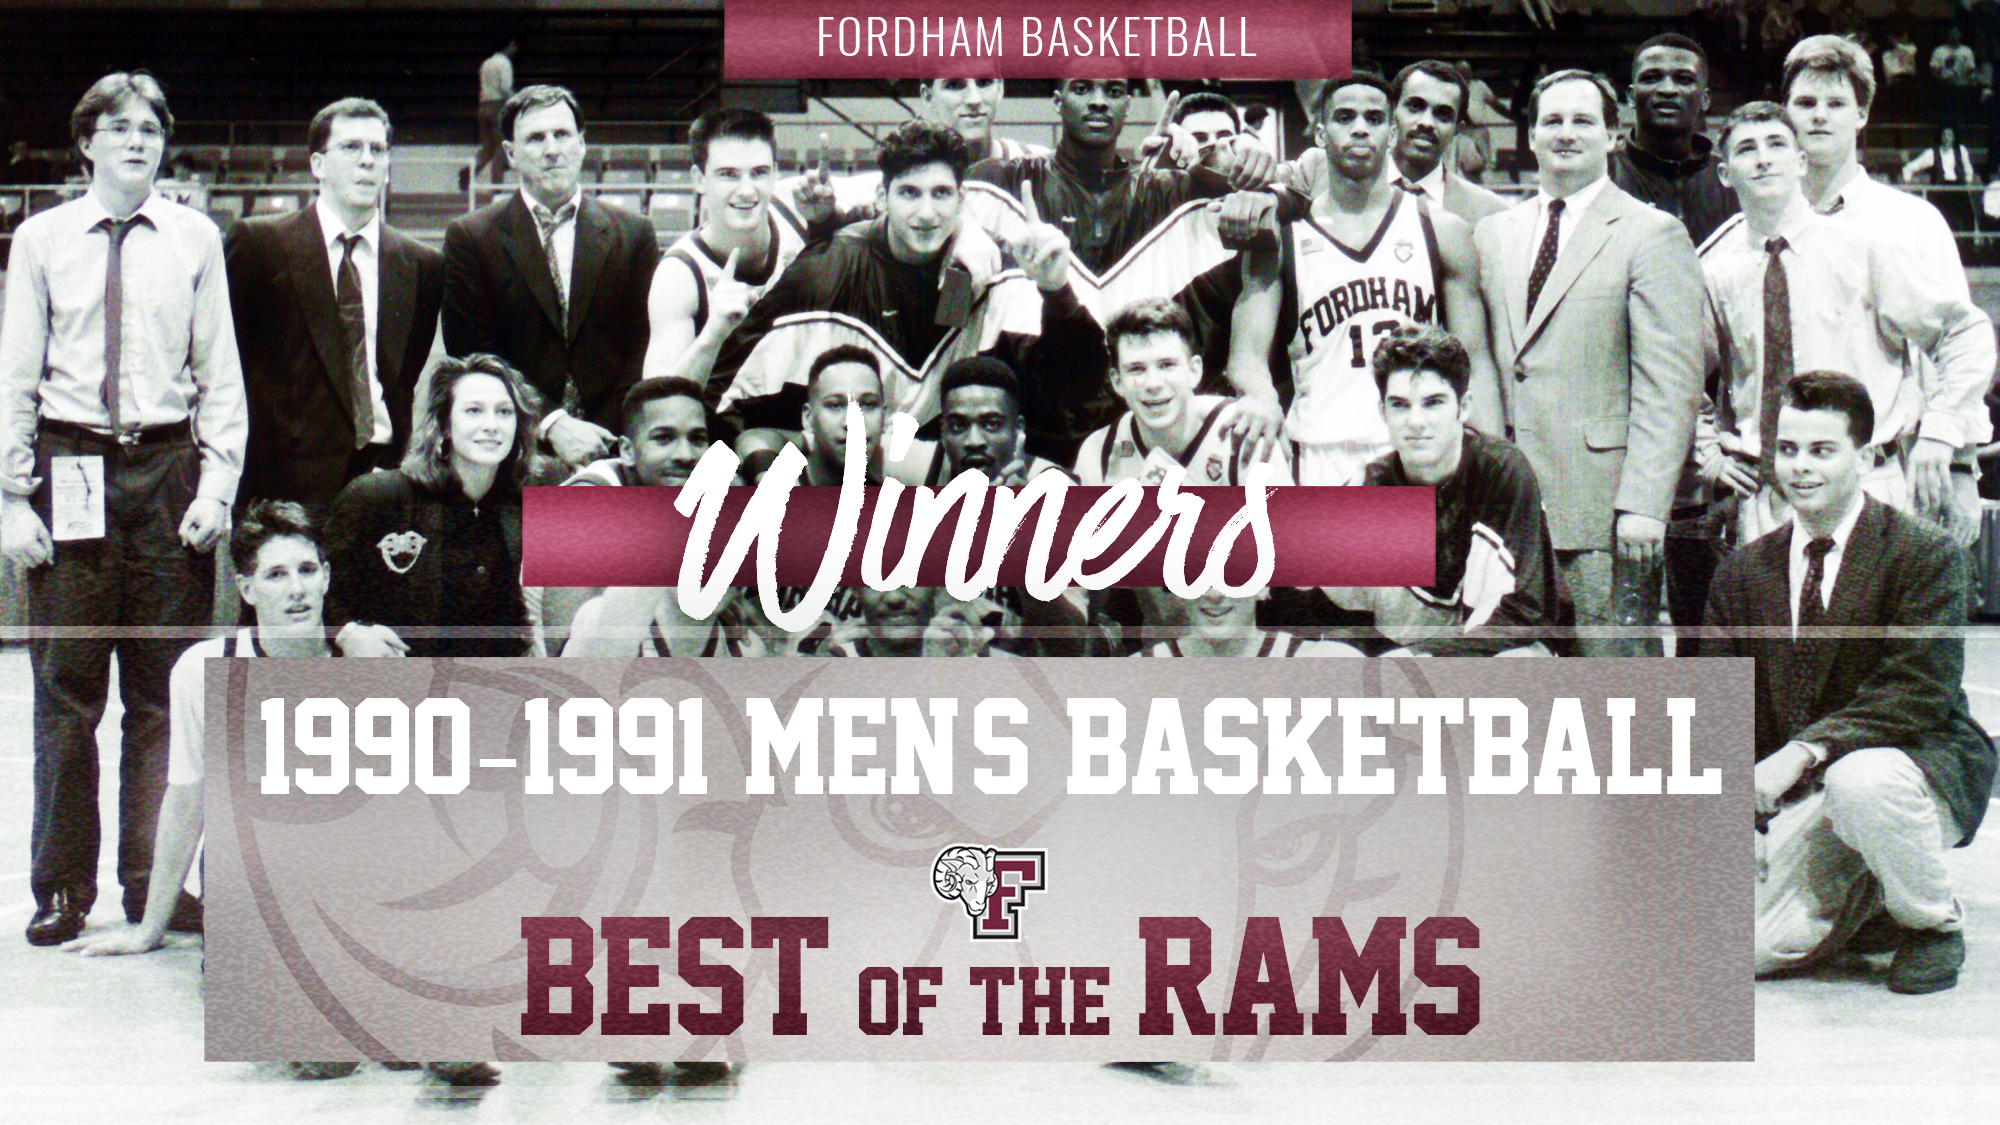 1990-91 MBB wins #BestofRams competition